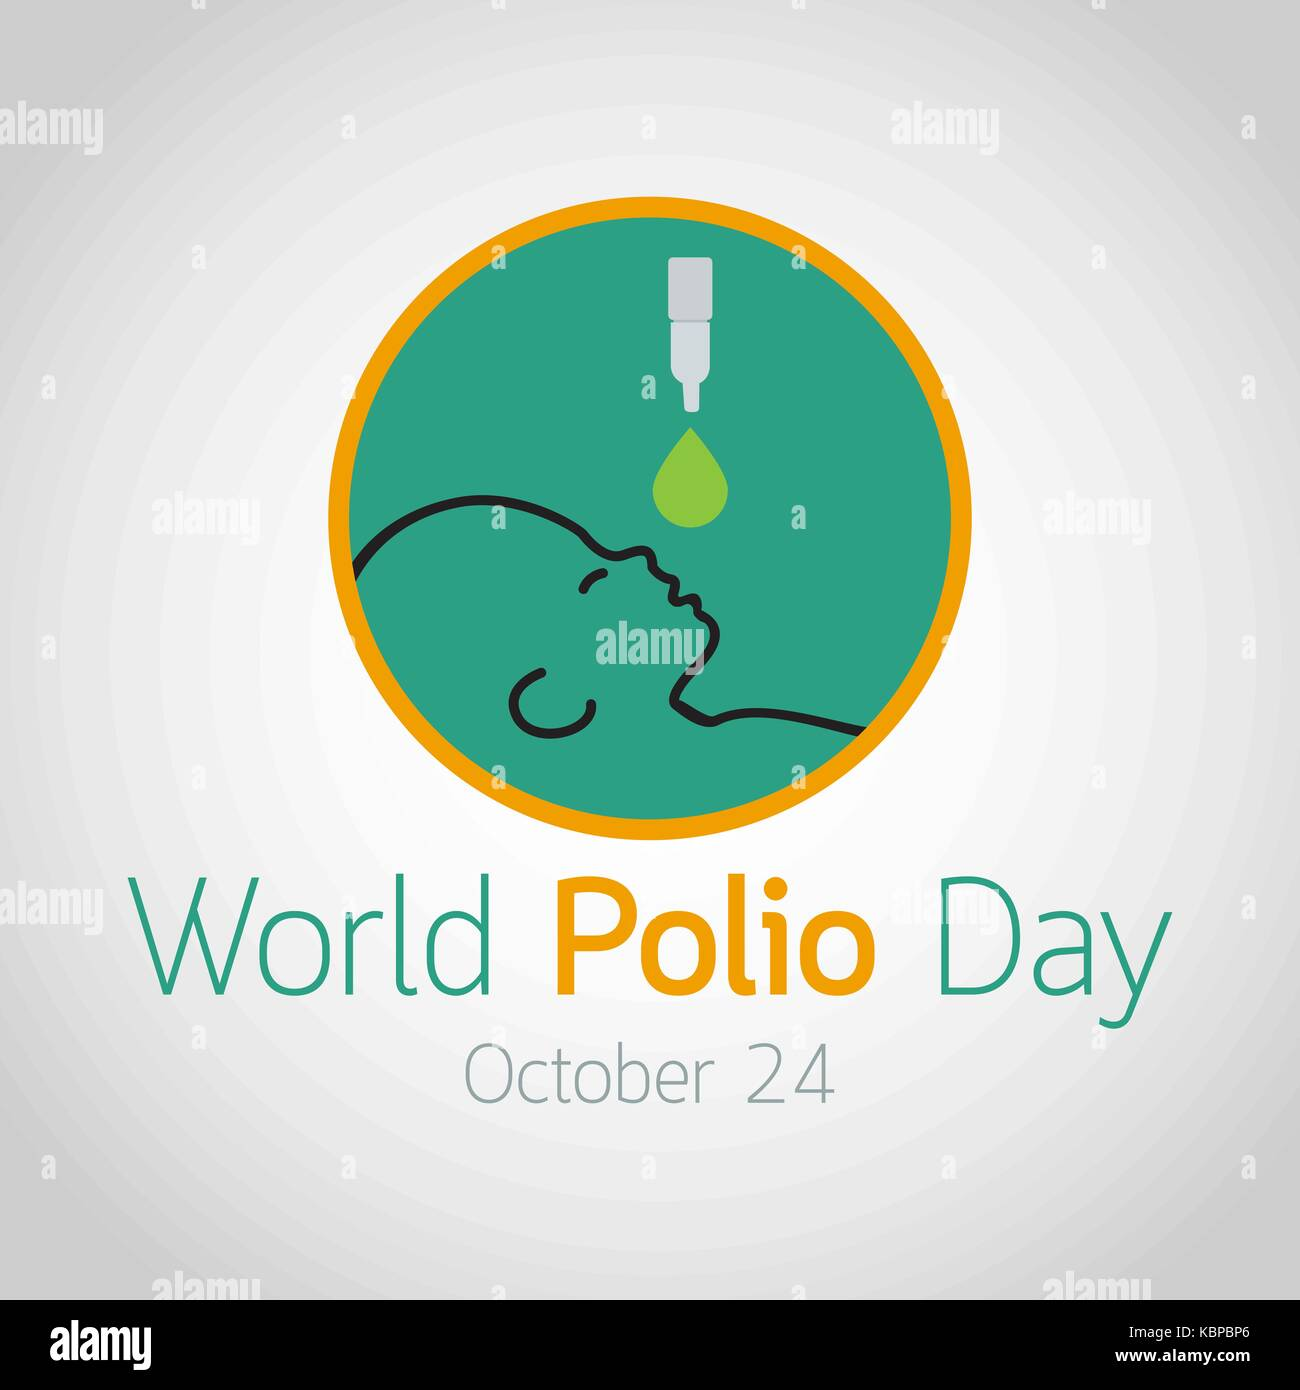 World Polio Day vector icon illustration - Stock Image